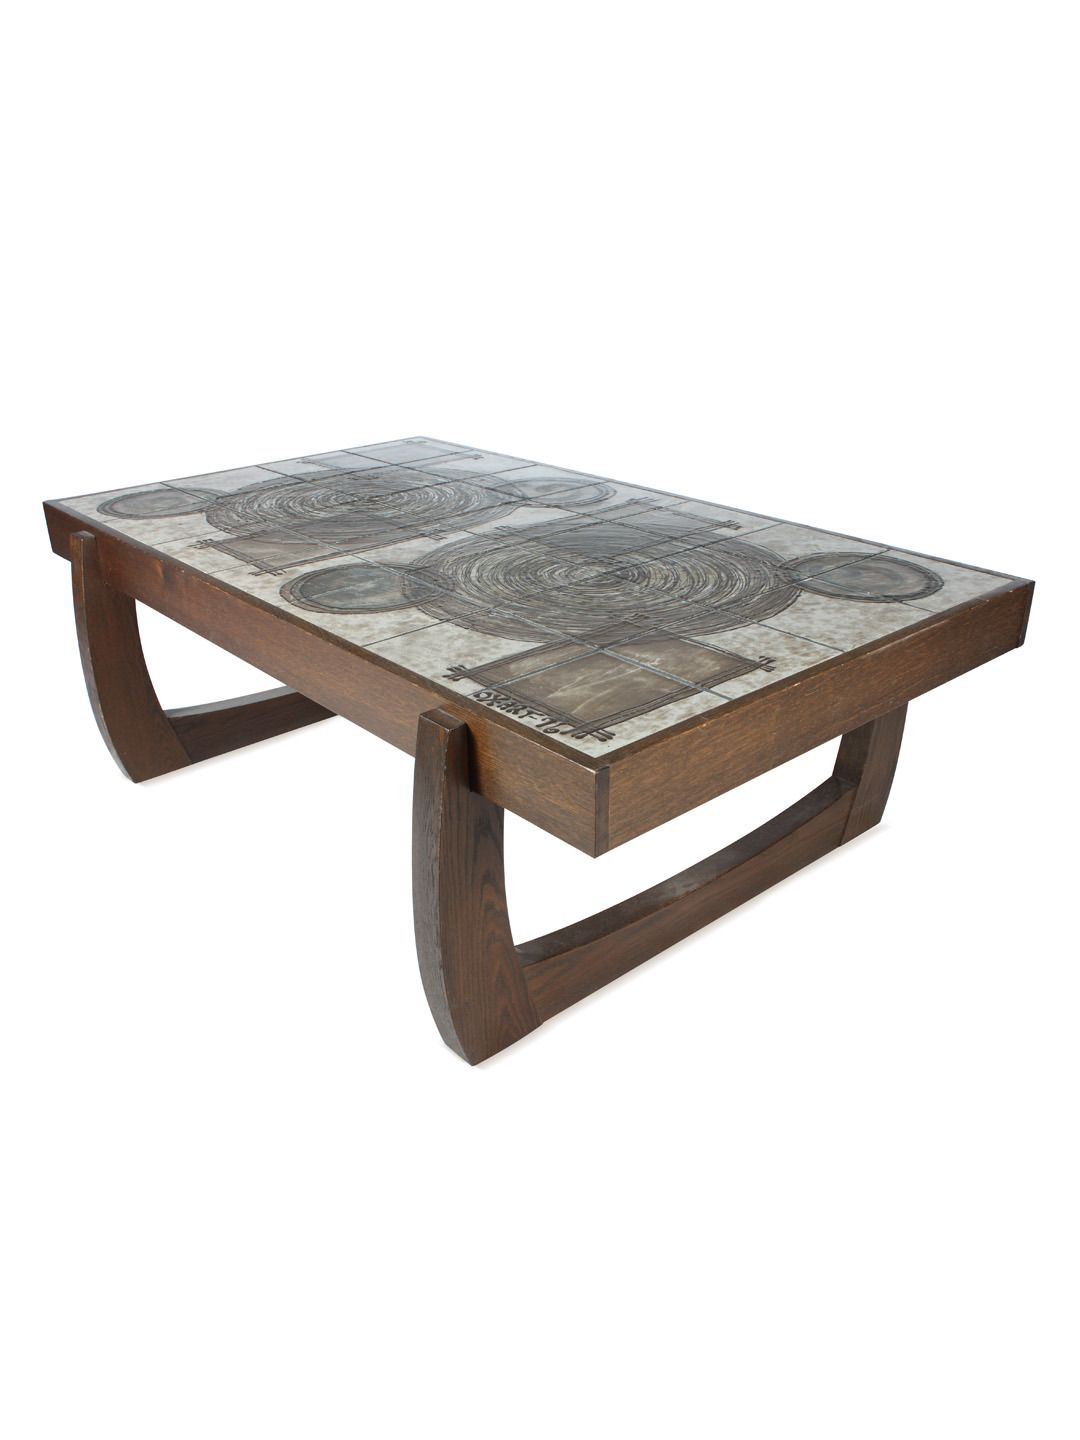 Mid Century Modern Tile Top Coffee Table By Vintique At Gilt Tiled Coffee Table Coffee Table Coffee Table Setting